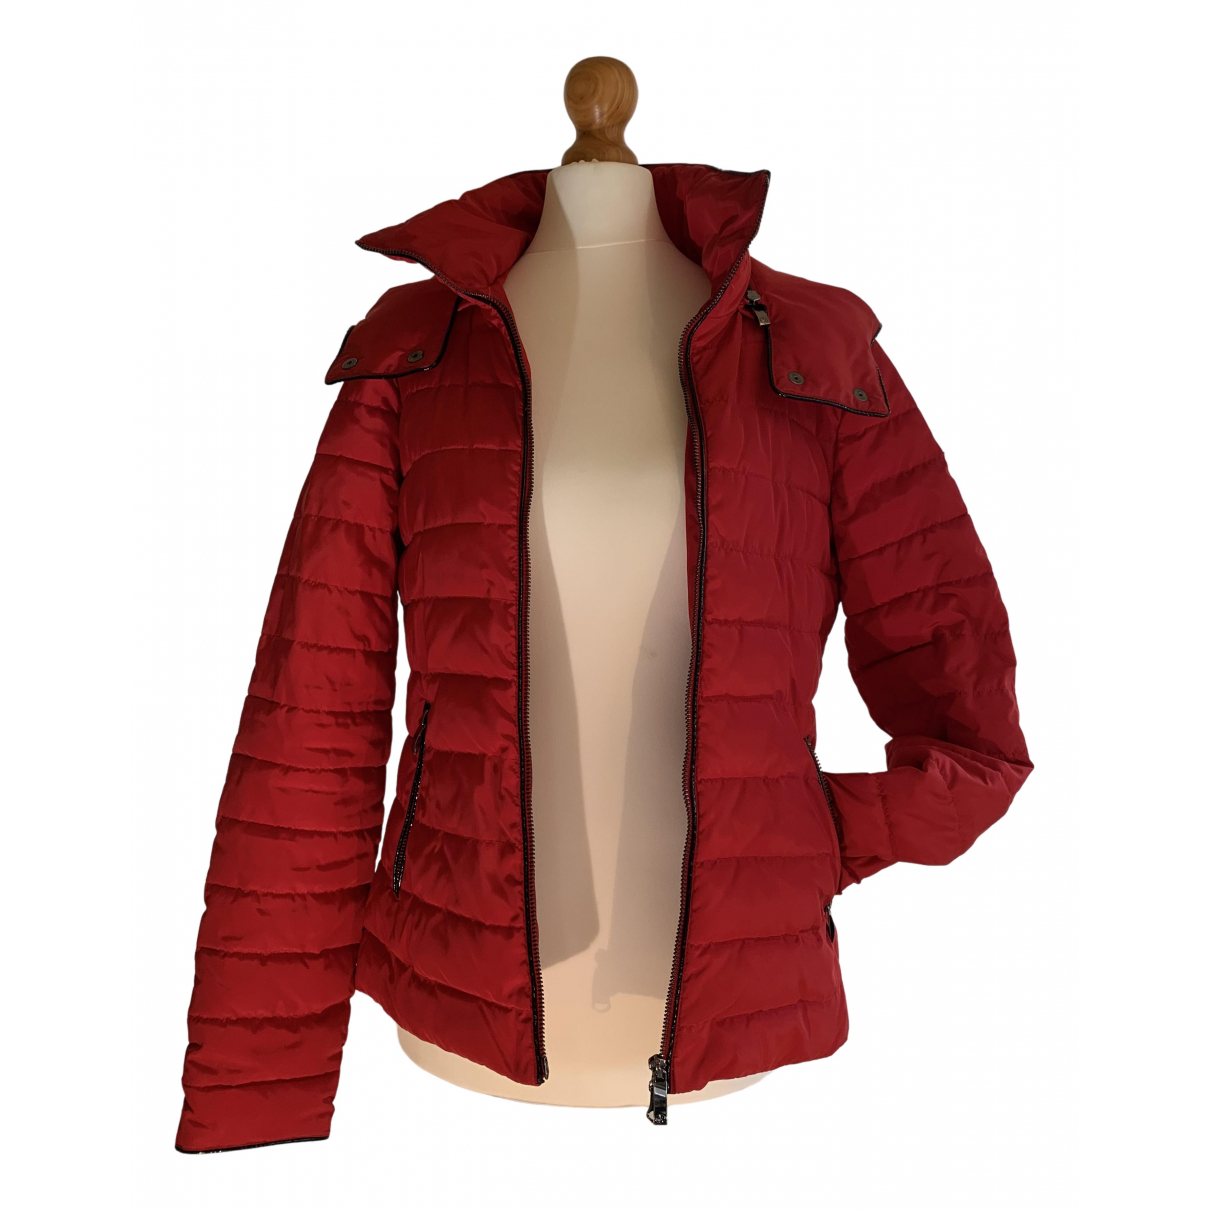 Armani Jeans \N Red jacket for Women 10 UK